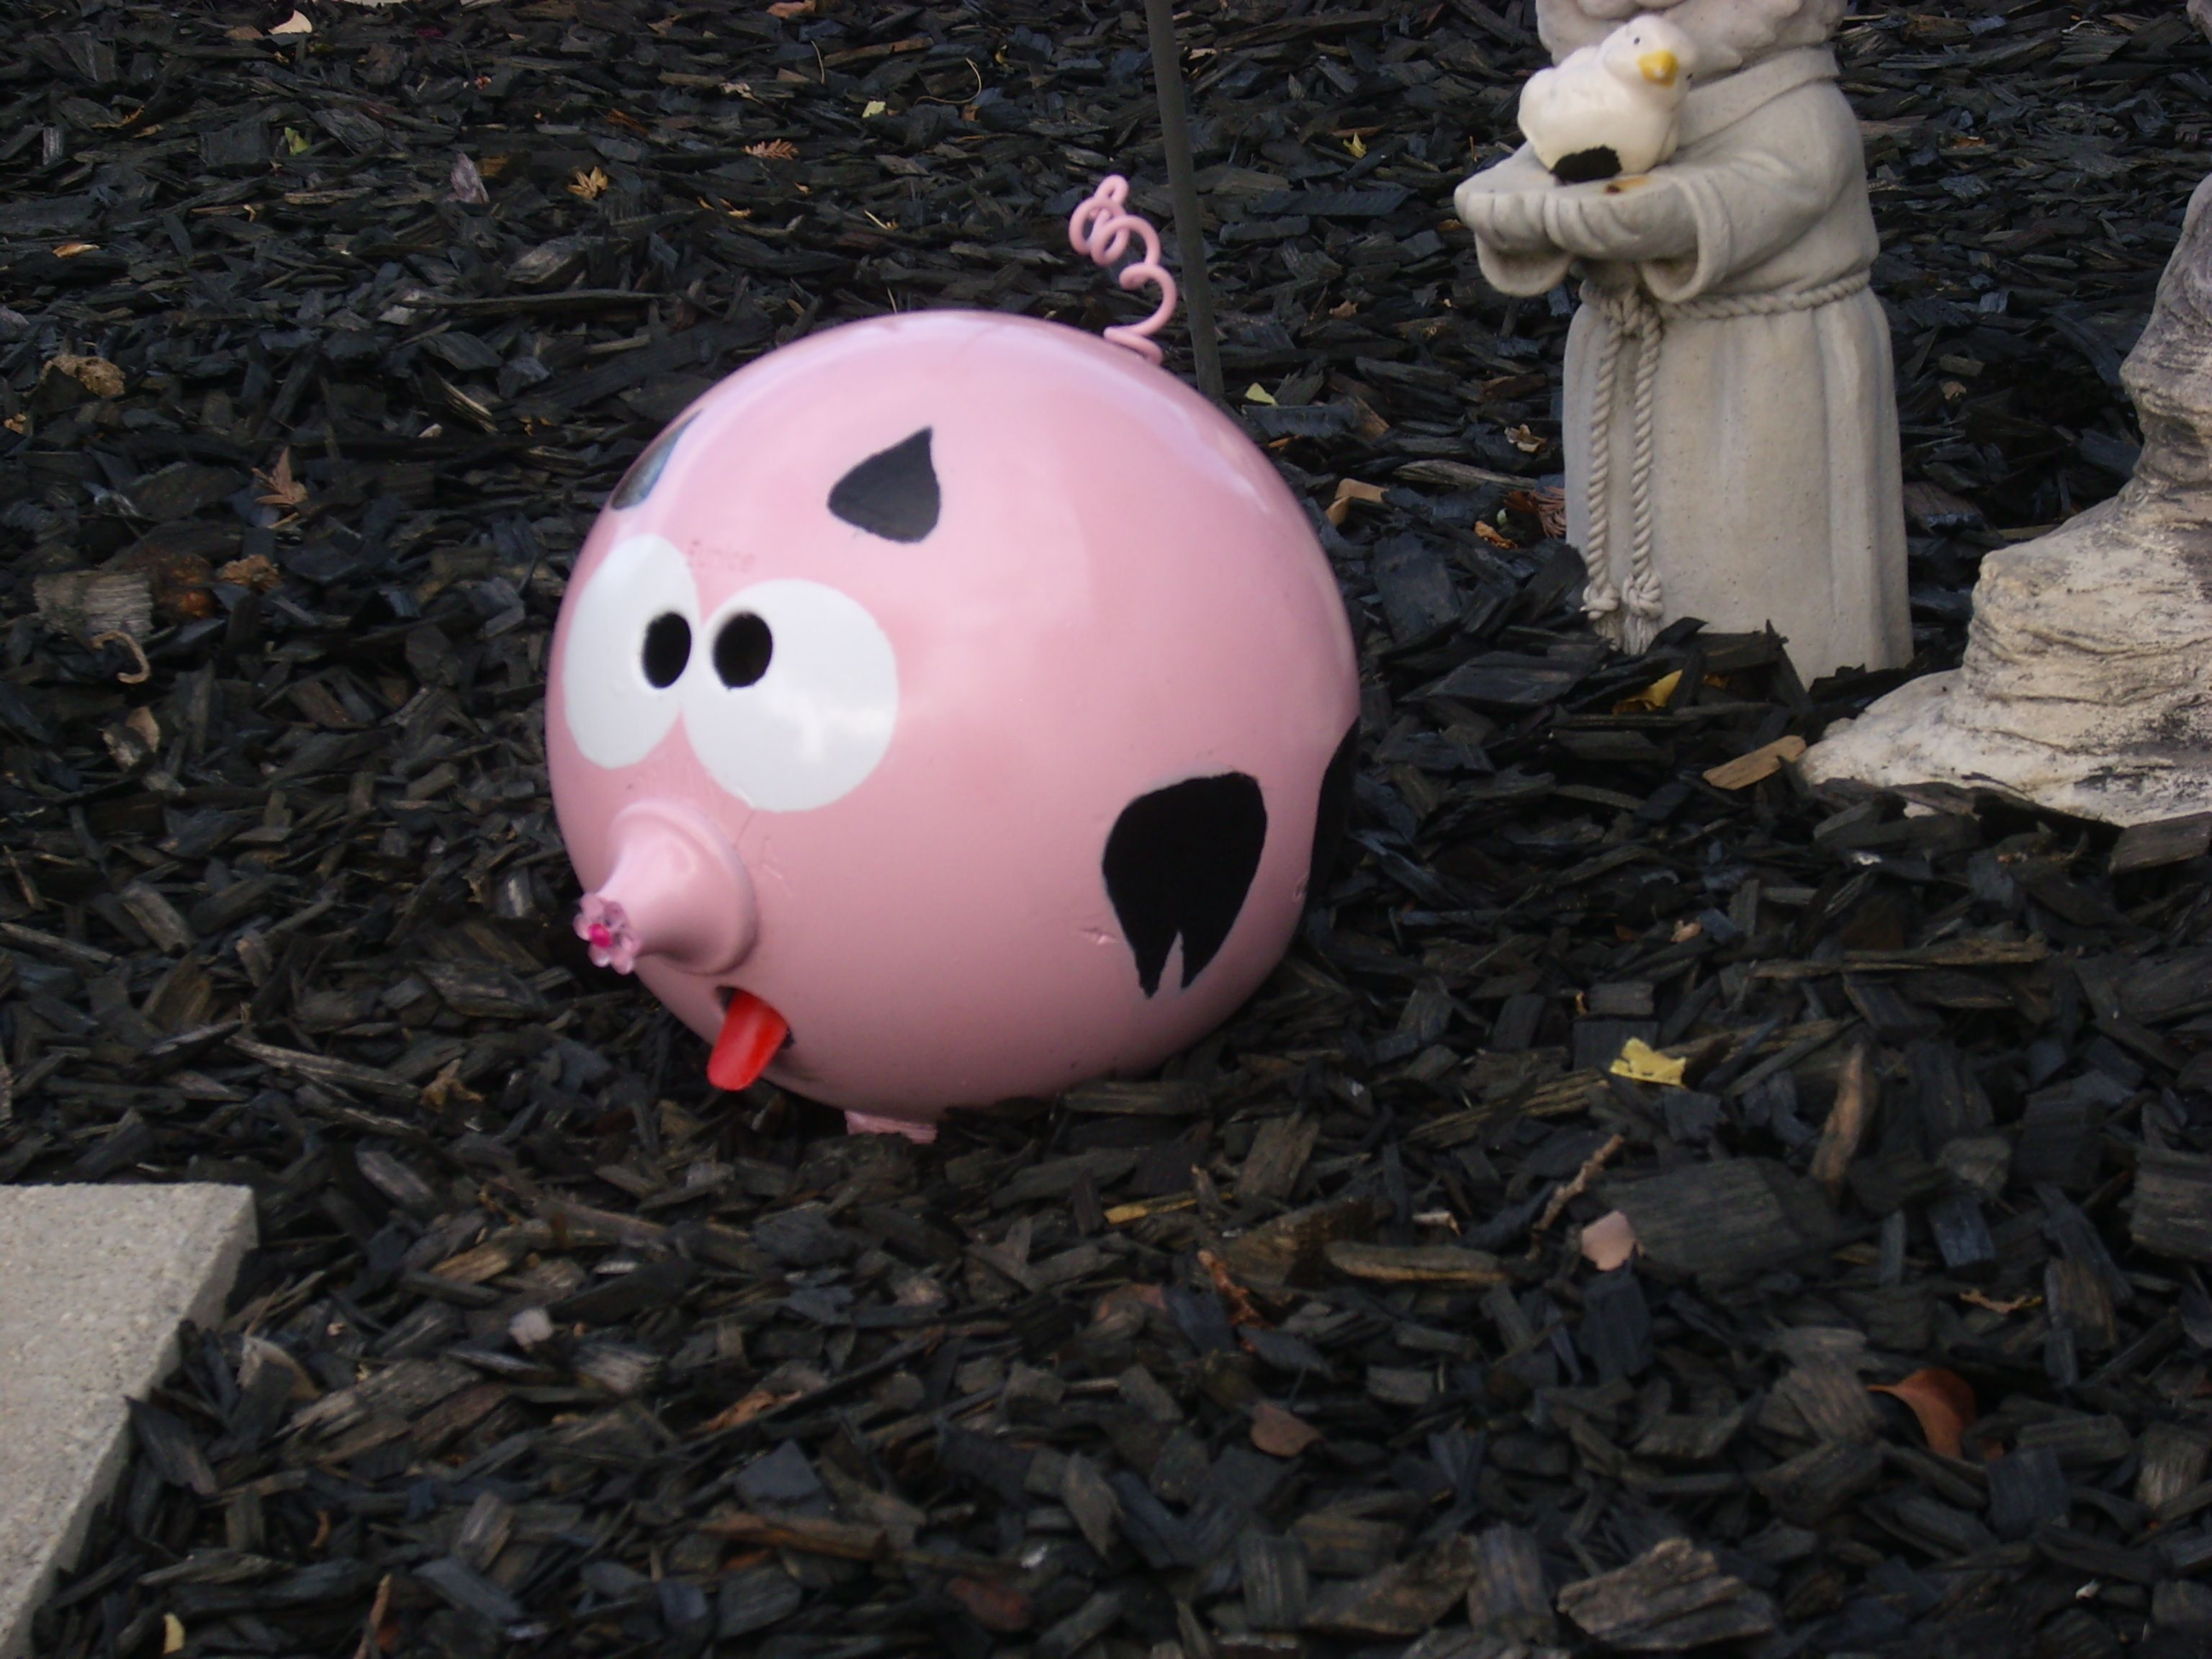 How To Decorate A Bowling Ball Eunice The Pig Made From A Bowling Ball & Metal Snout  Bowling